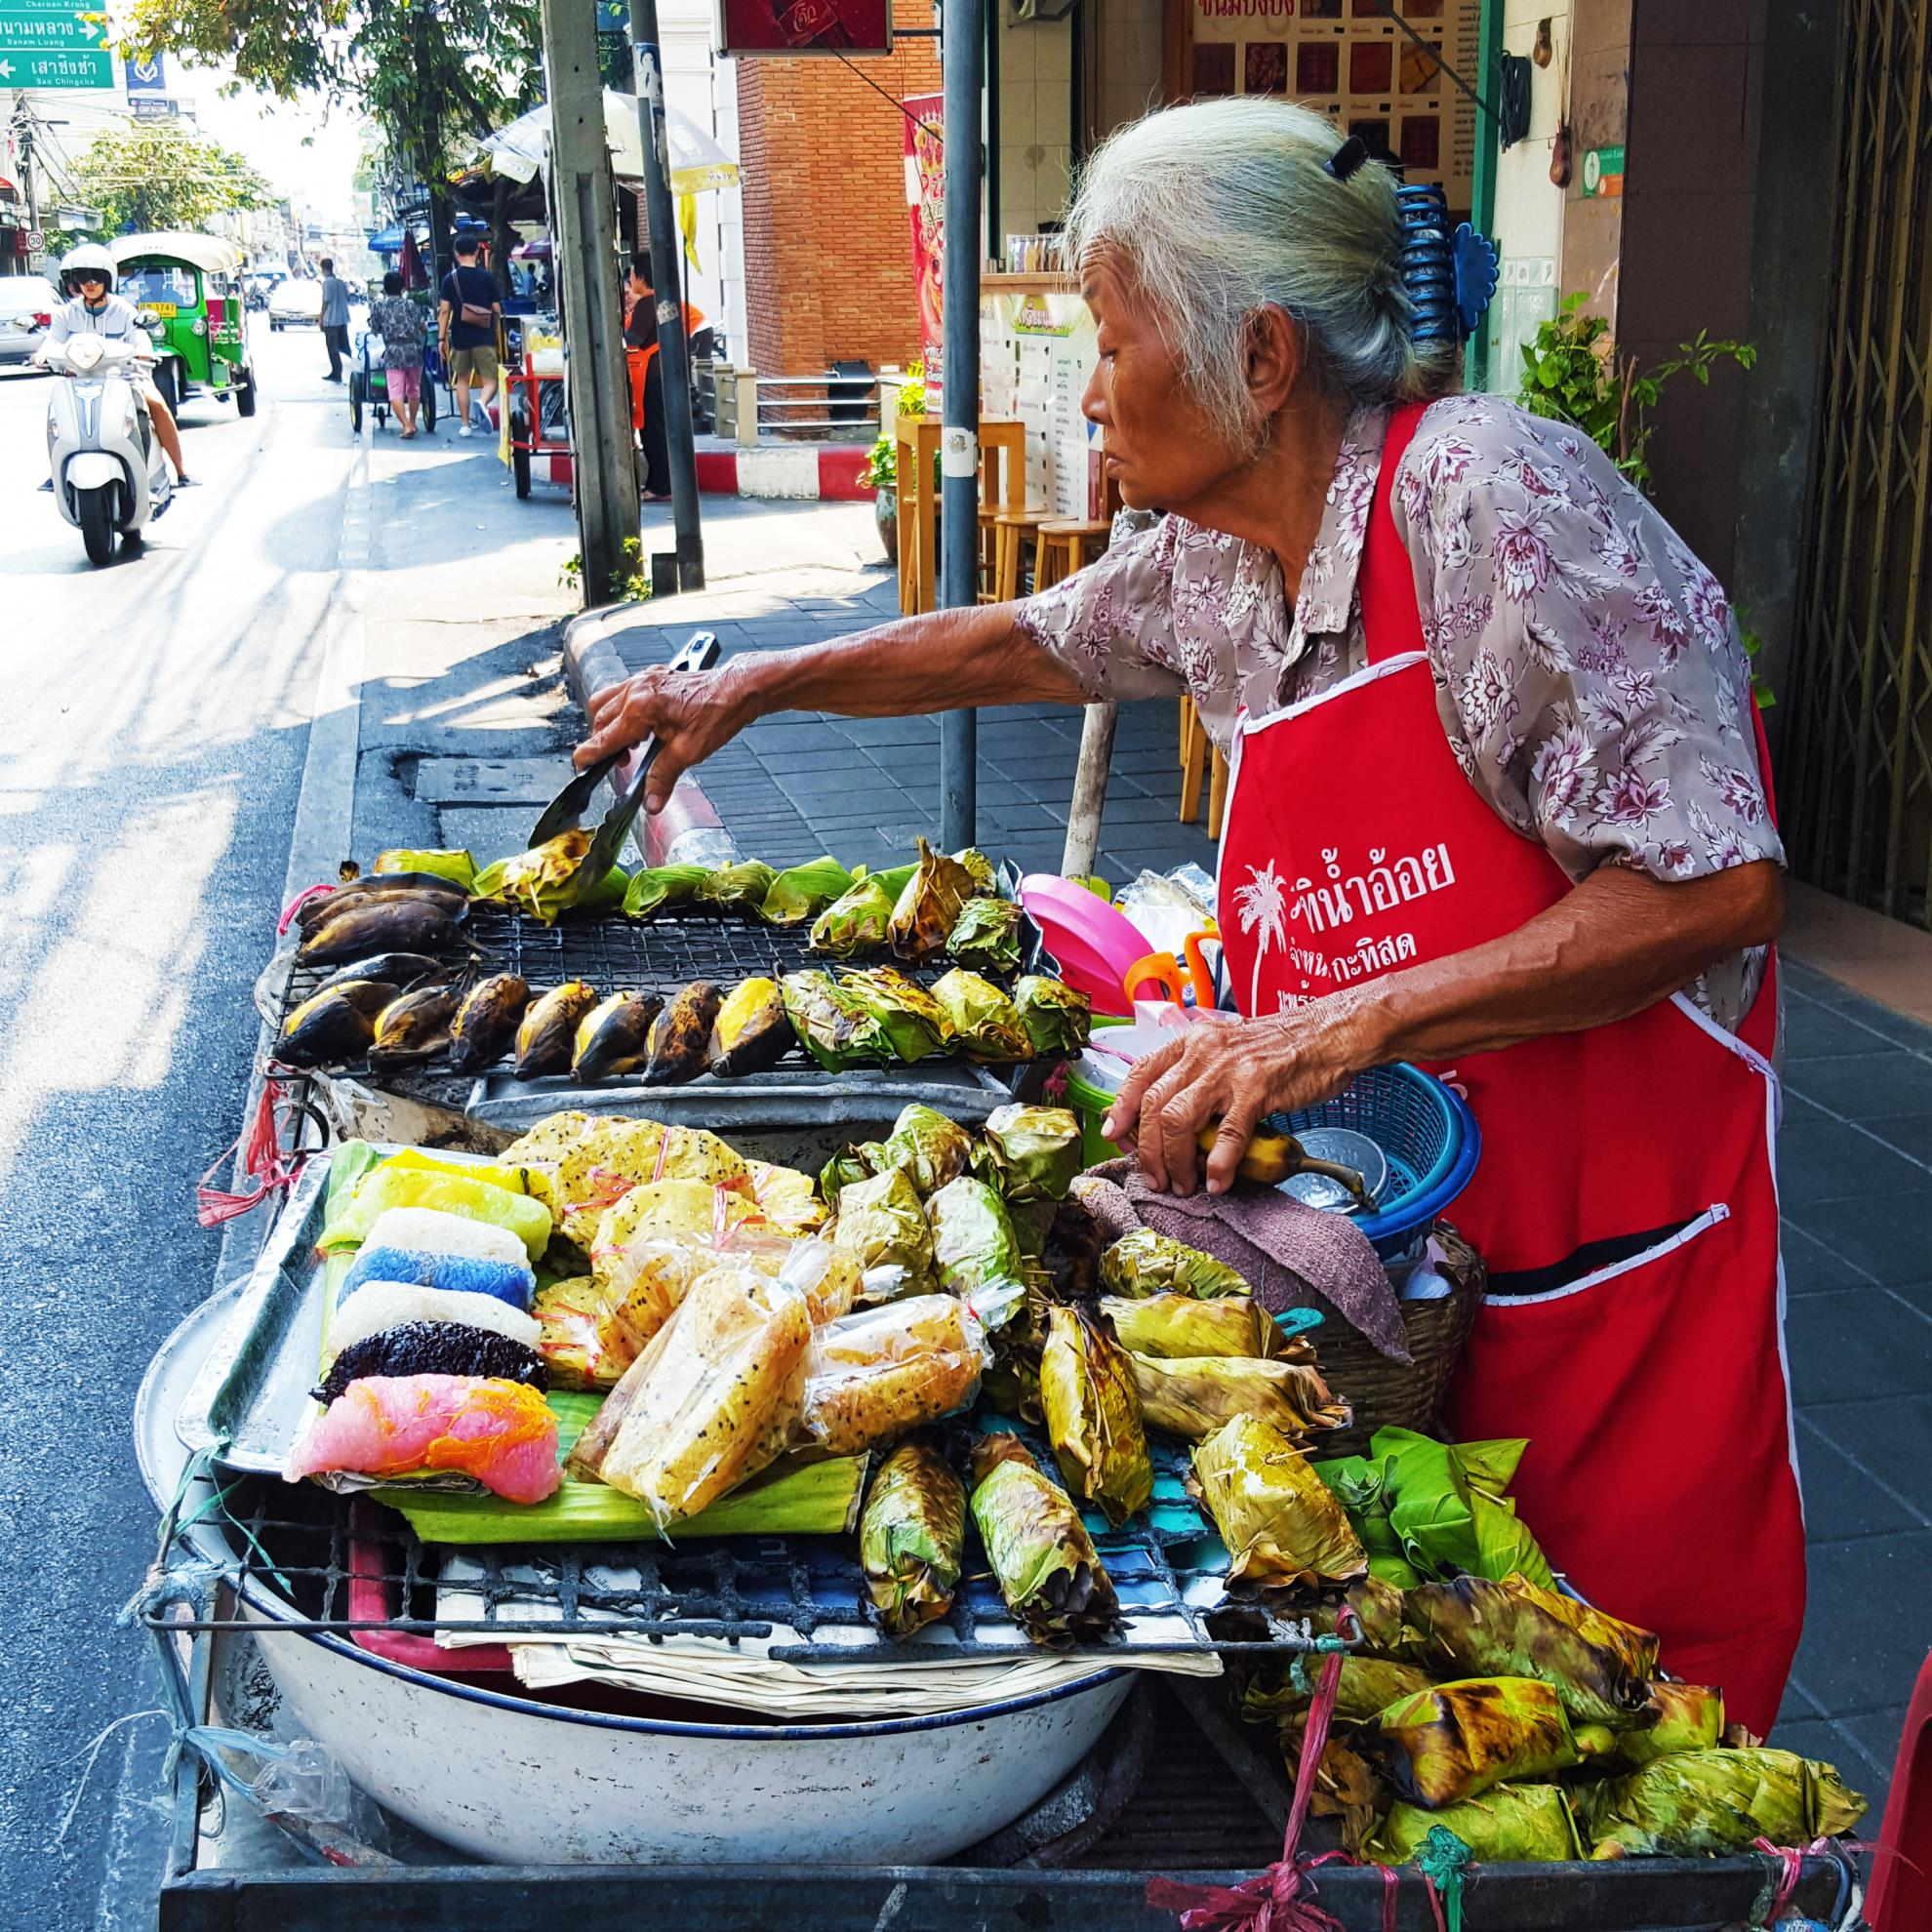 To Thai Food or not to Thai Food? This is the question